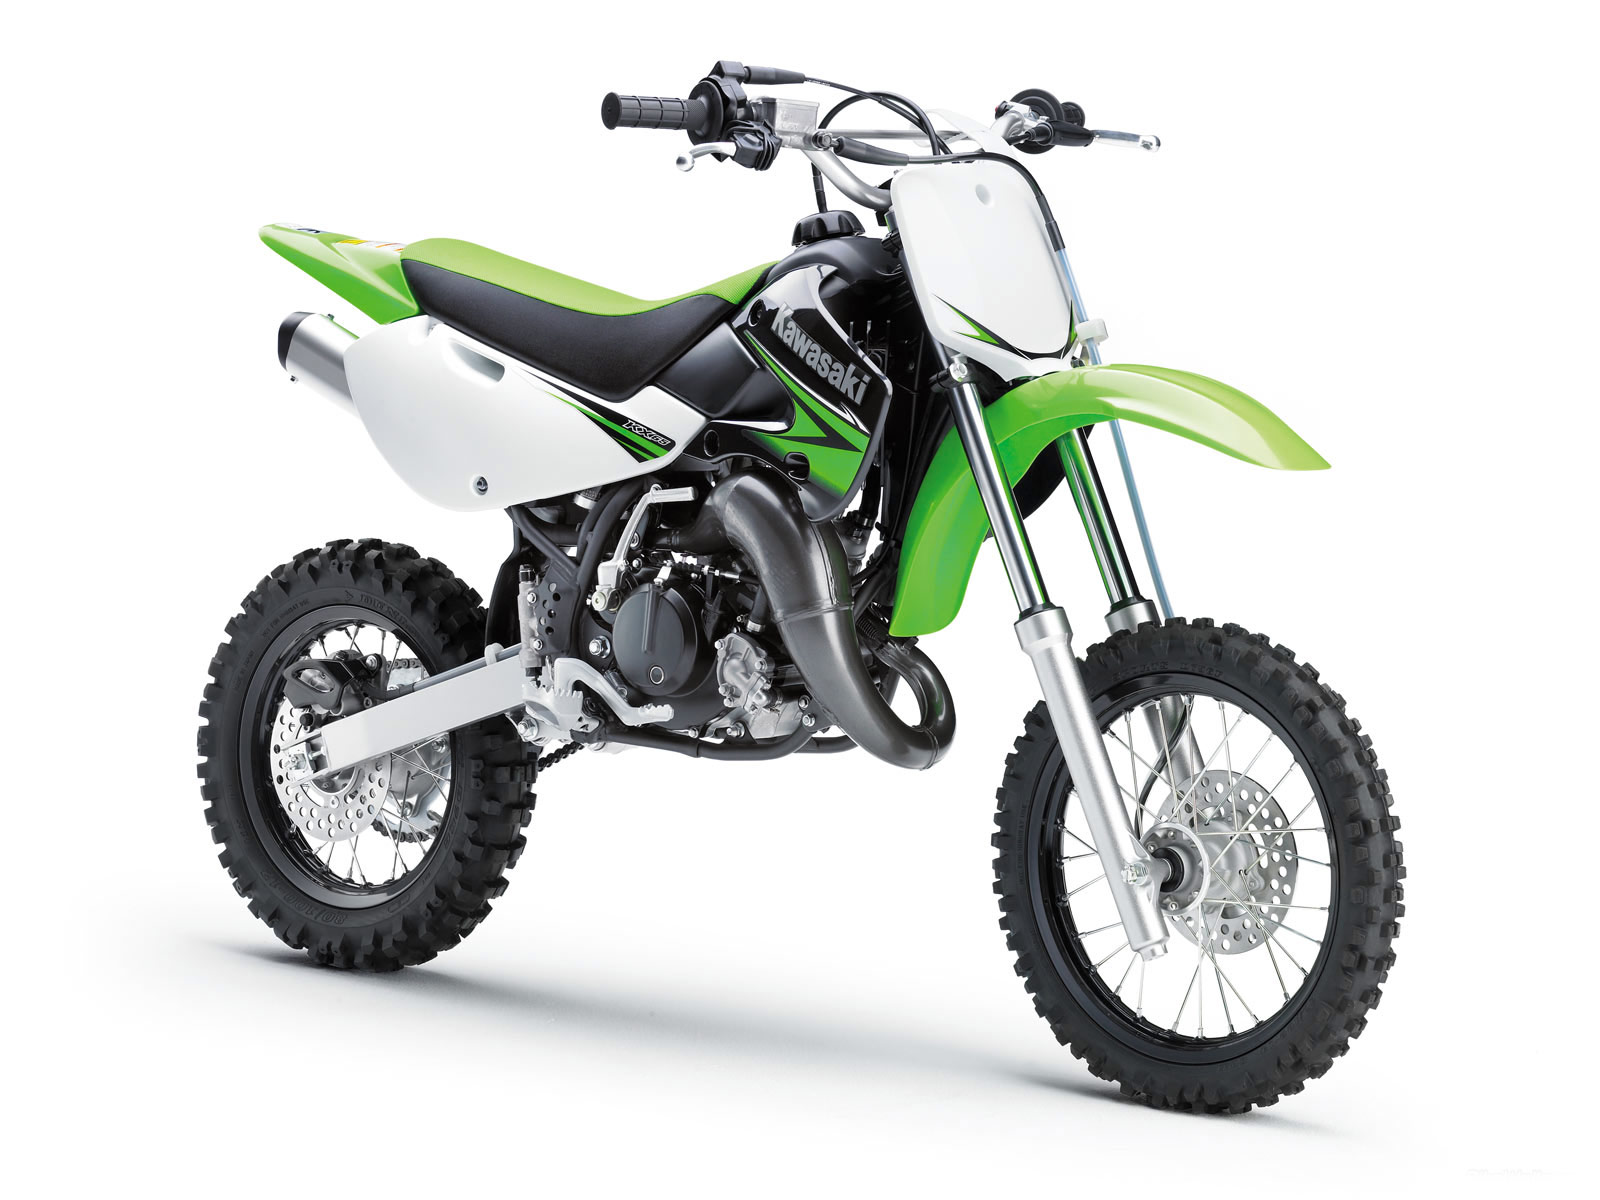 kawasaki kx 65 2010 insurance info specs wallpapers. Black Bedroom Furniture Sets. Home Design Ideas